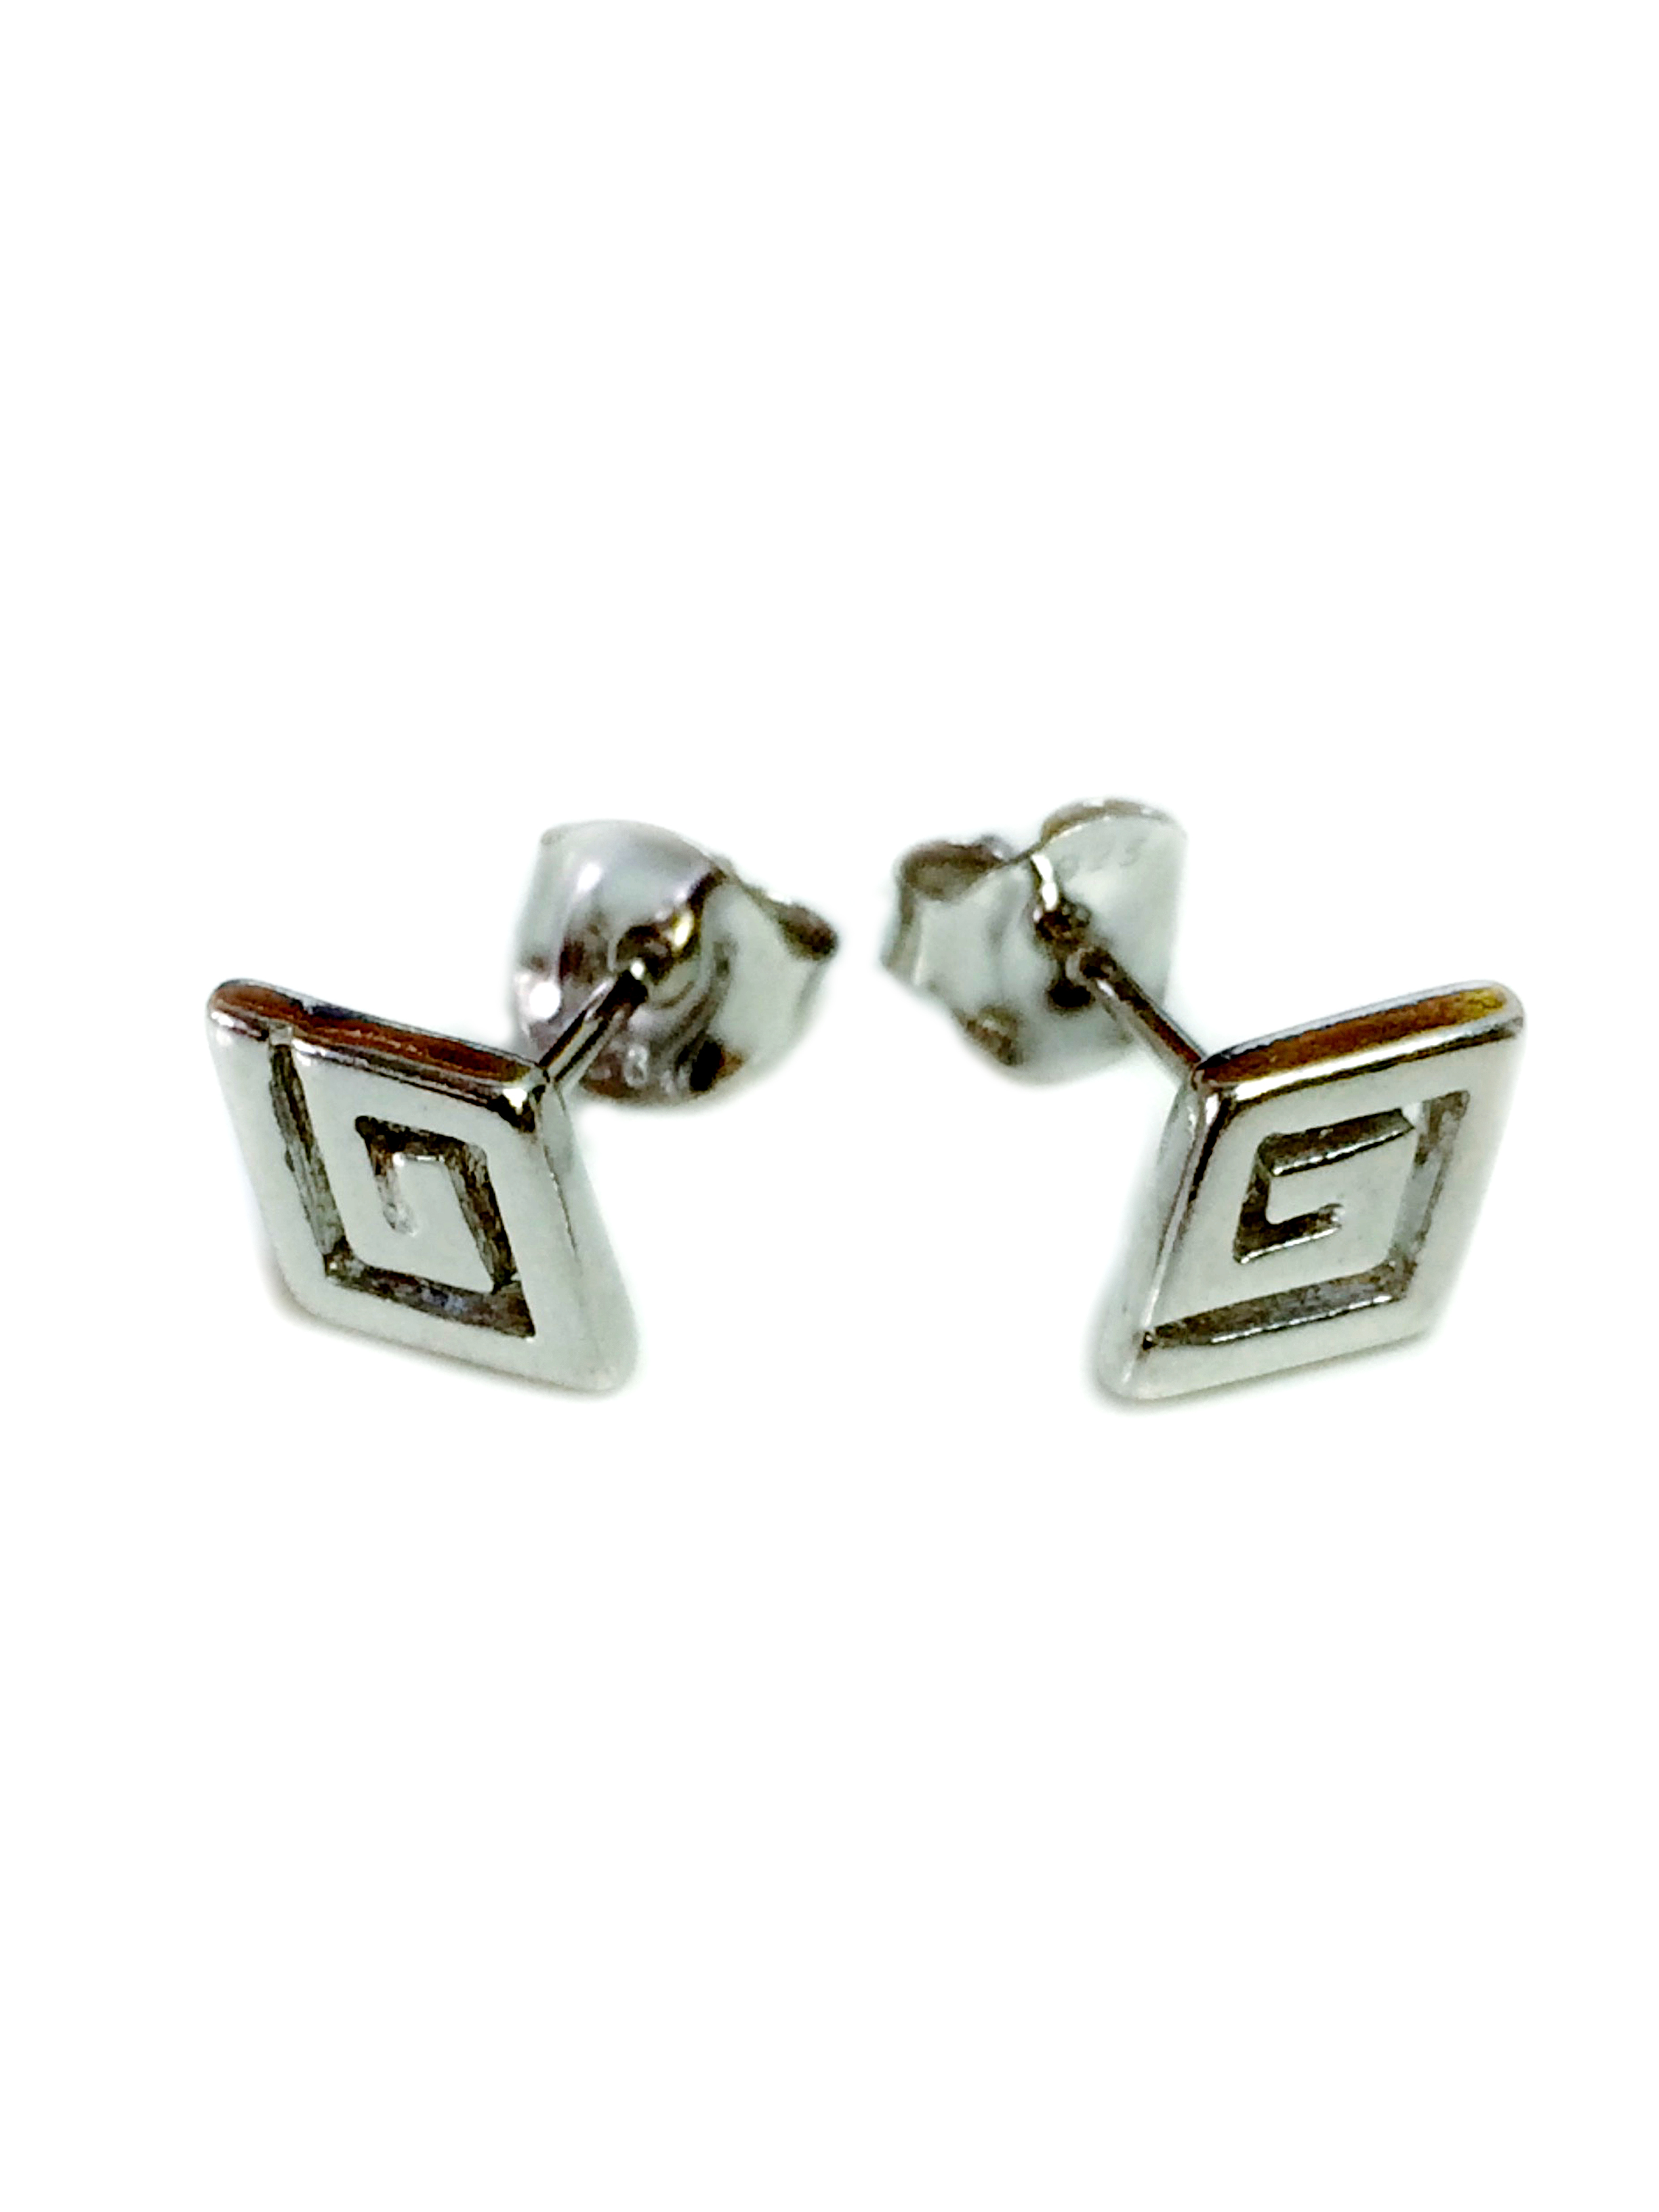 Sterling Silver Rhodium Plated Ancient Greek Key Stud Earrings Brought back from the of Greek ancient jewelry era, designed & inspired by the Ancient Greek mythological Labyrinth  built by the legendary artificer Daedalus, makes this timeless pair of push back stud earrings a staple of a 3000 year old history.